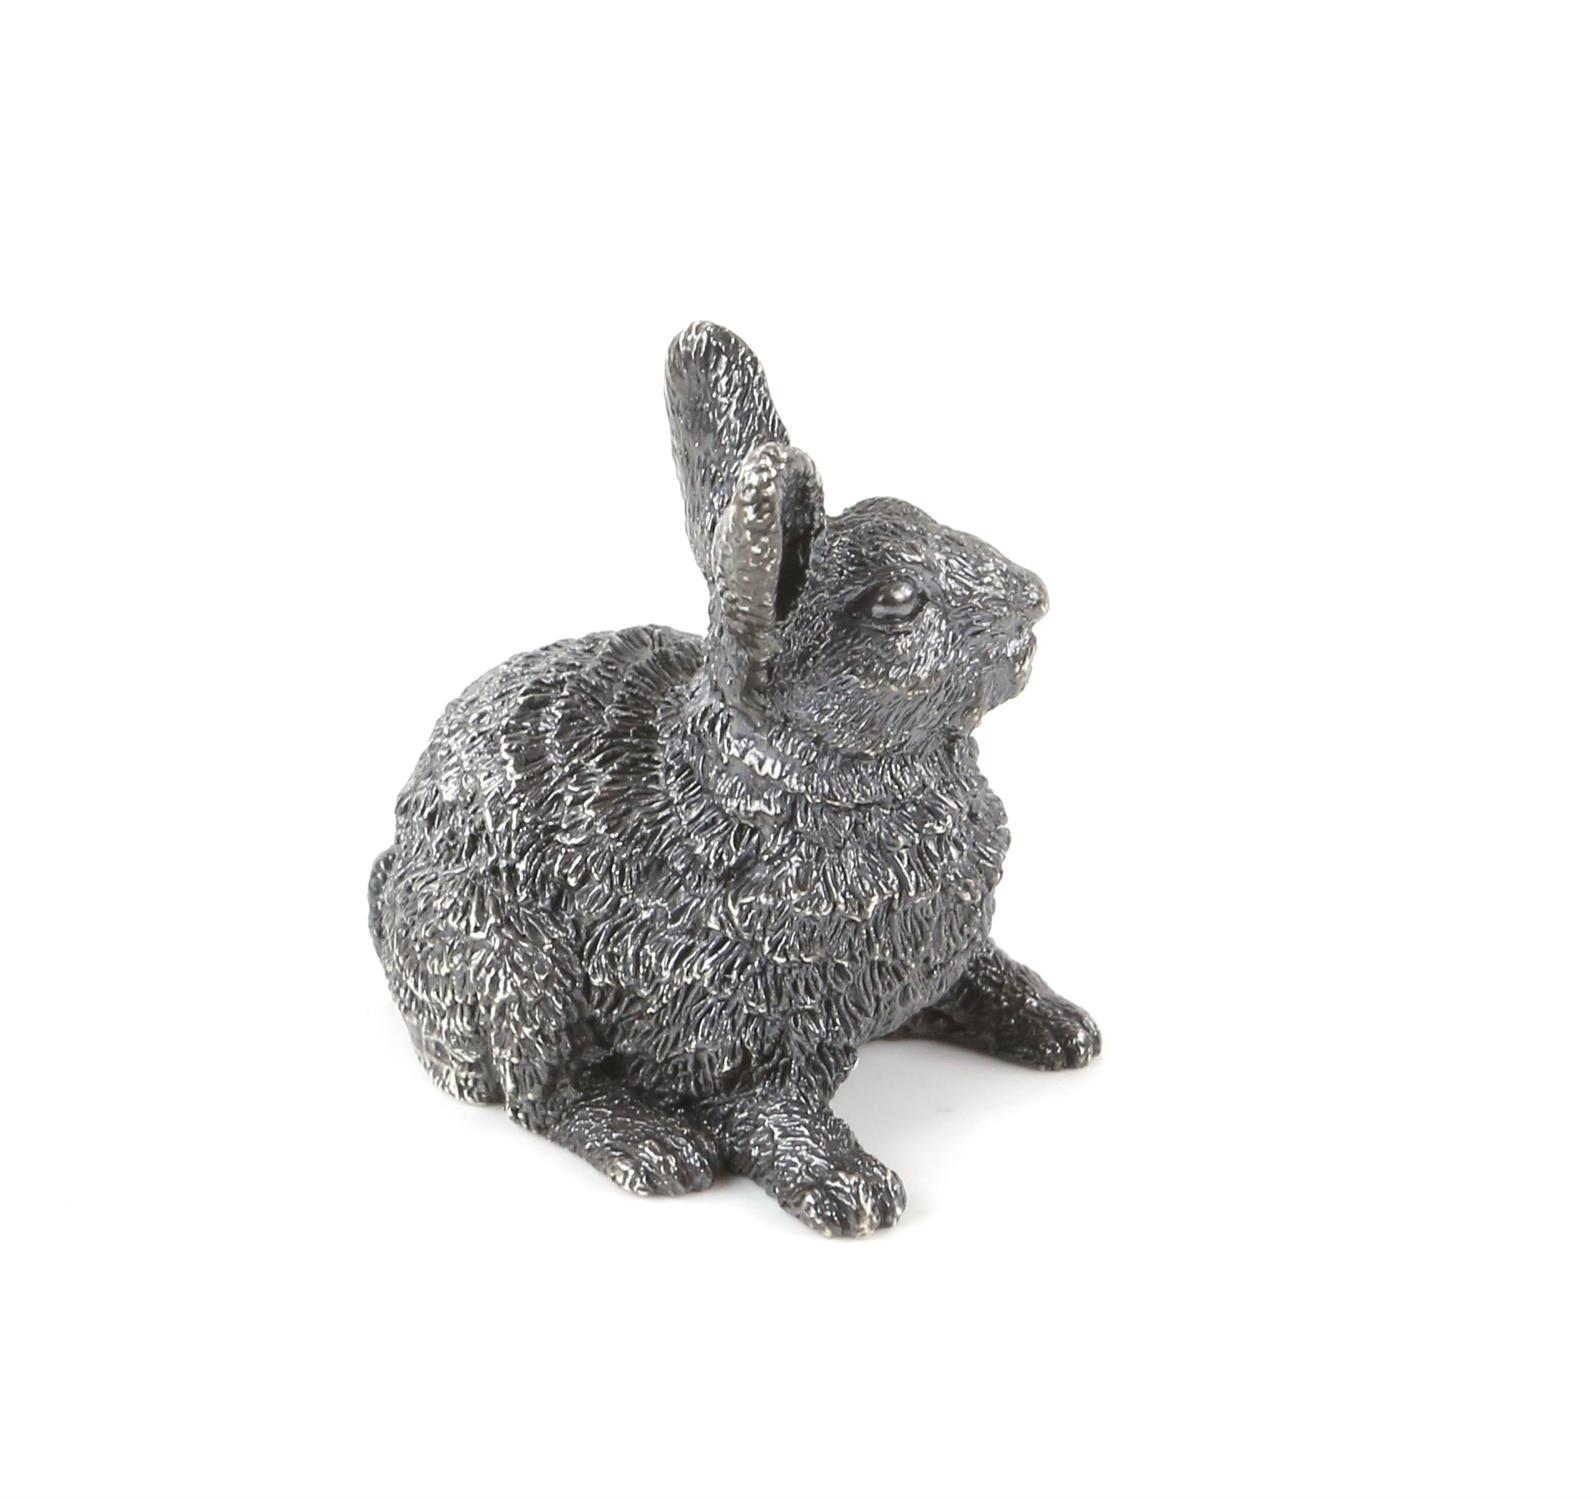 Silver model of a rabbit with import marks for London by FM - Image 3 of 4